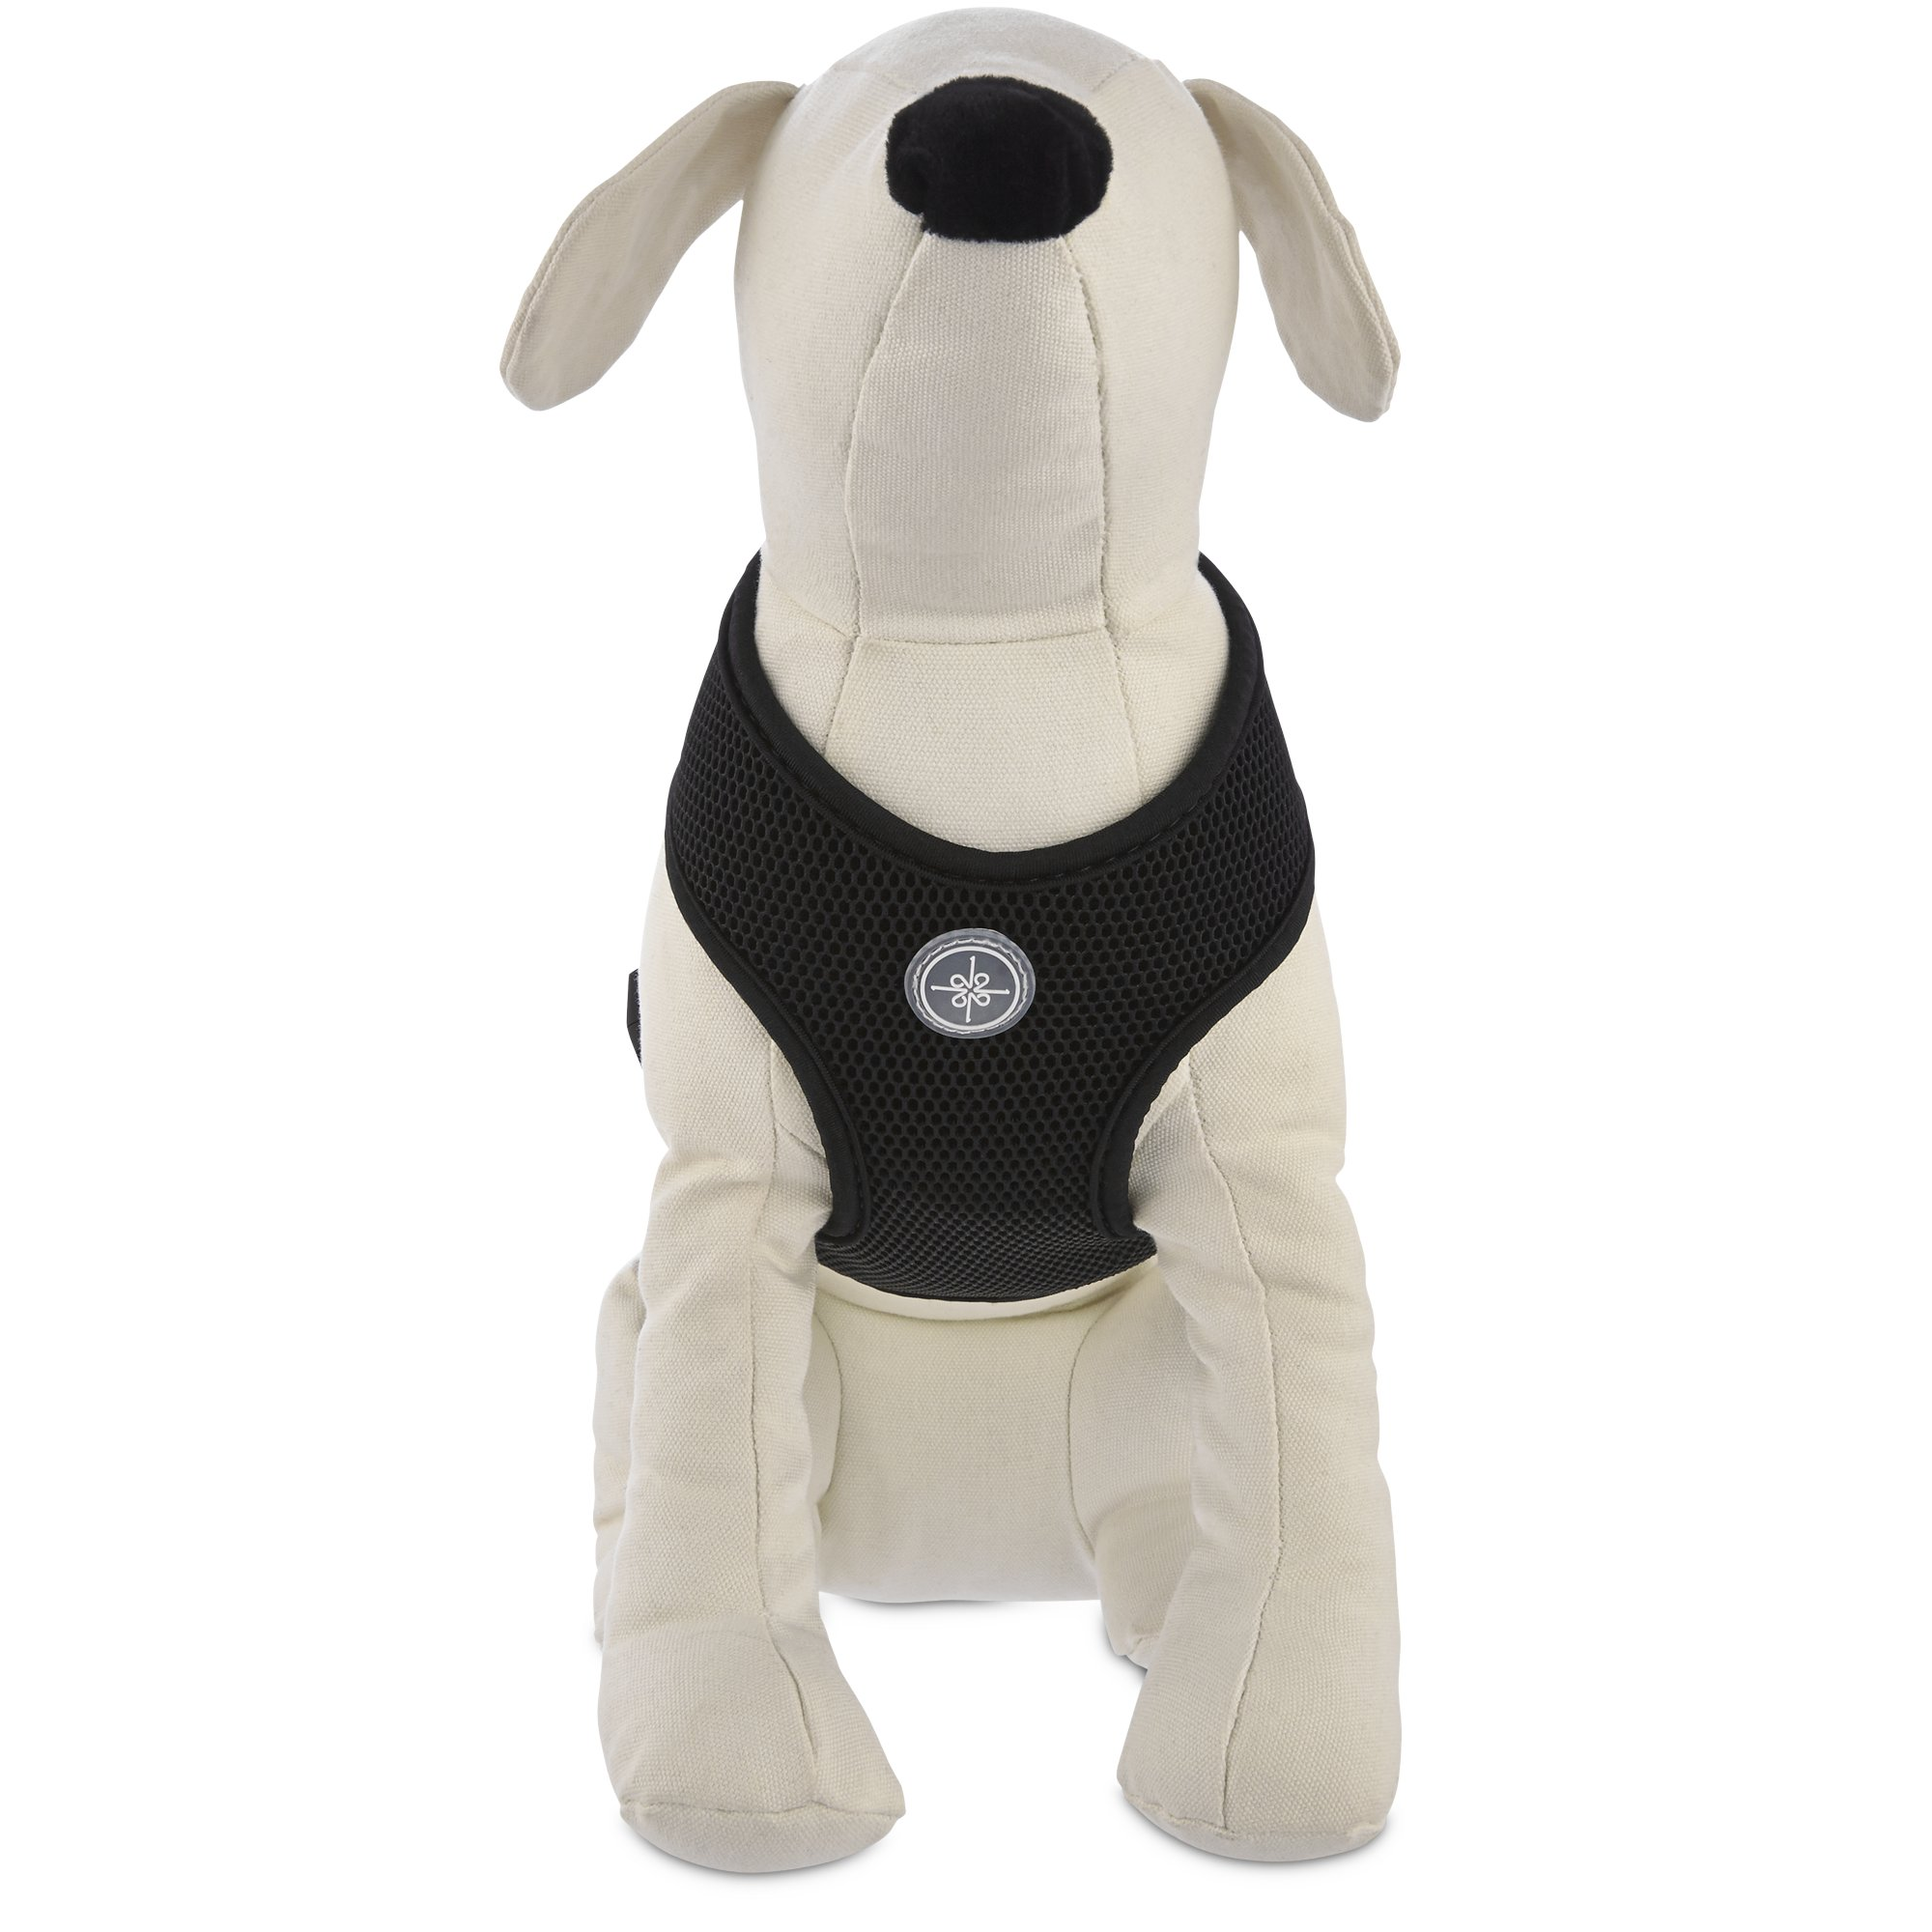 cbpbharnsbig under dog infolib harness belt lbs comfortable comforter seat petbuckle universal